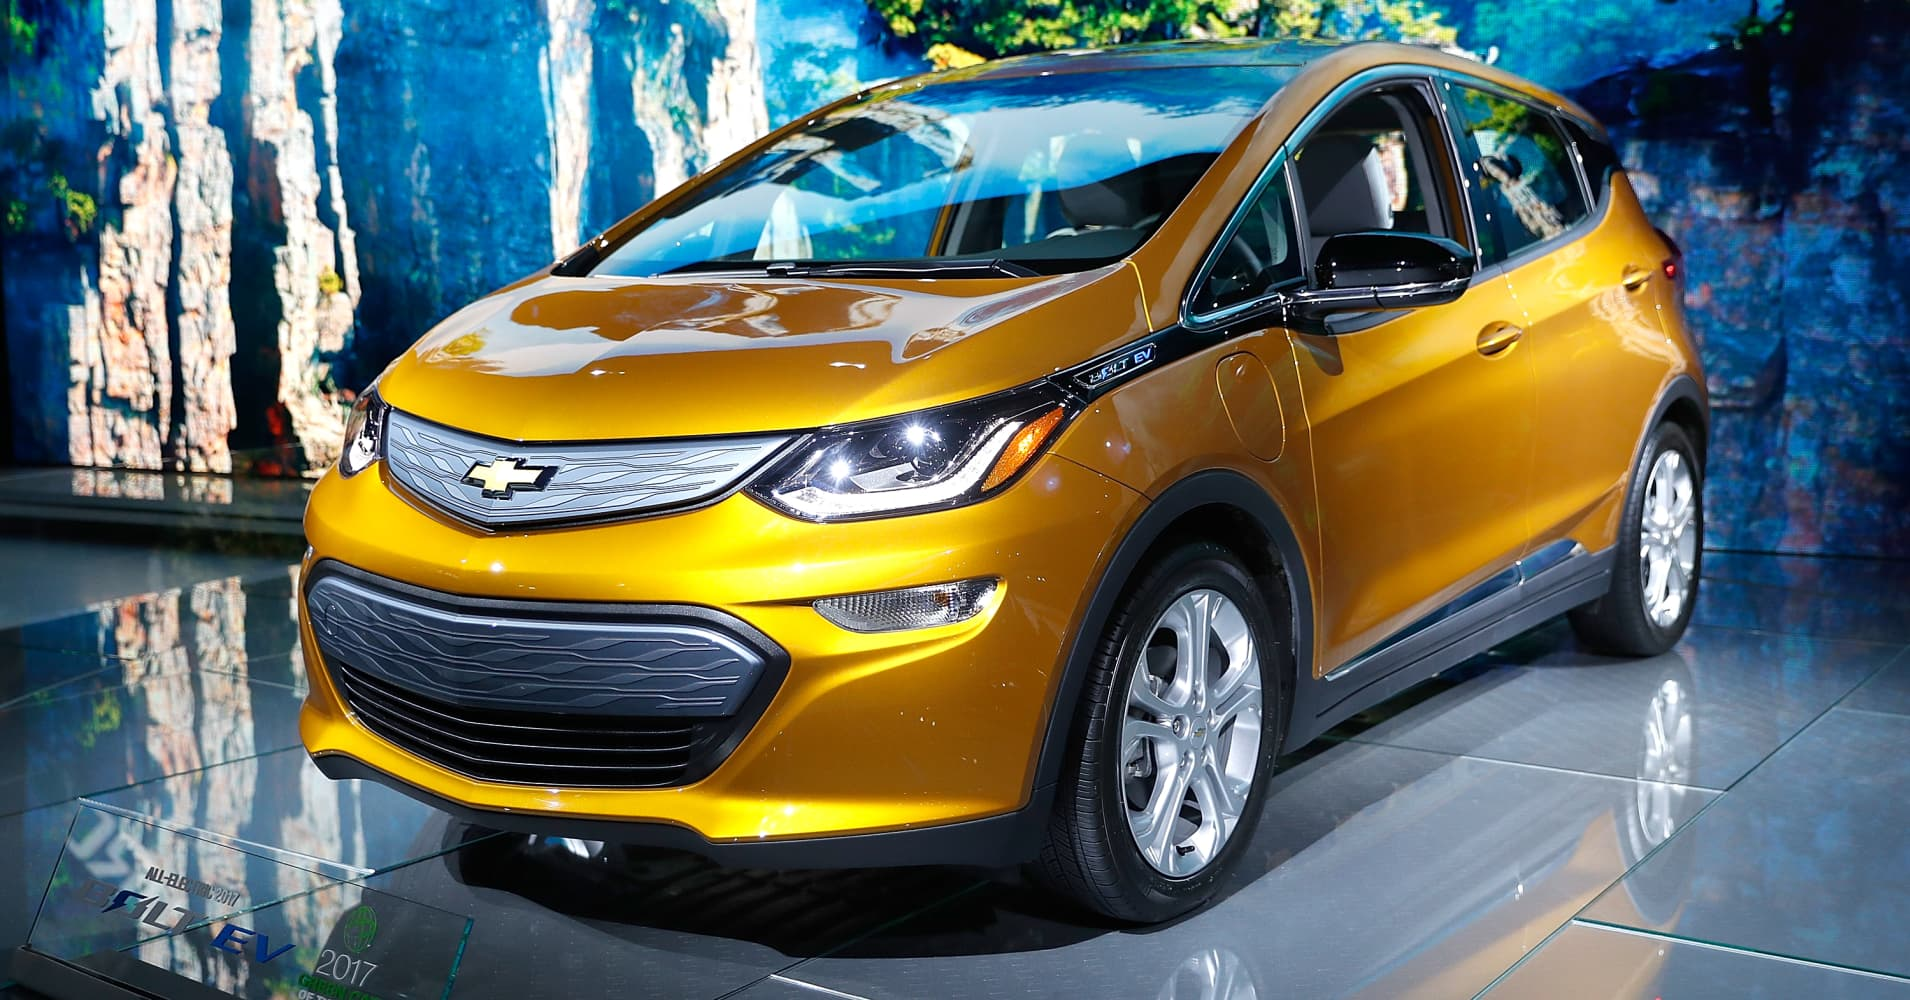 Cars For Sale Los Angeles >> GM stands to lose $9,000 per car on Chevy Bolt